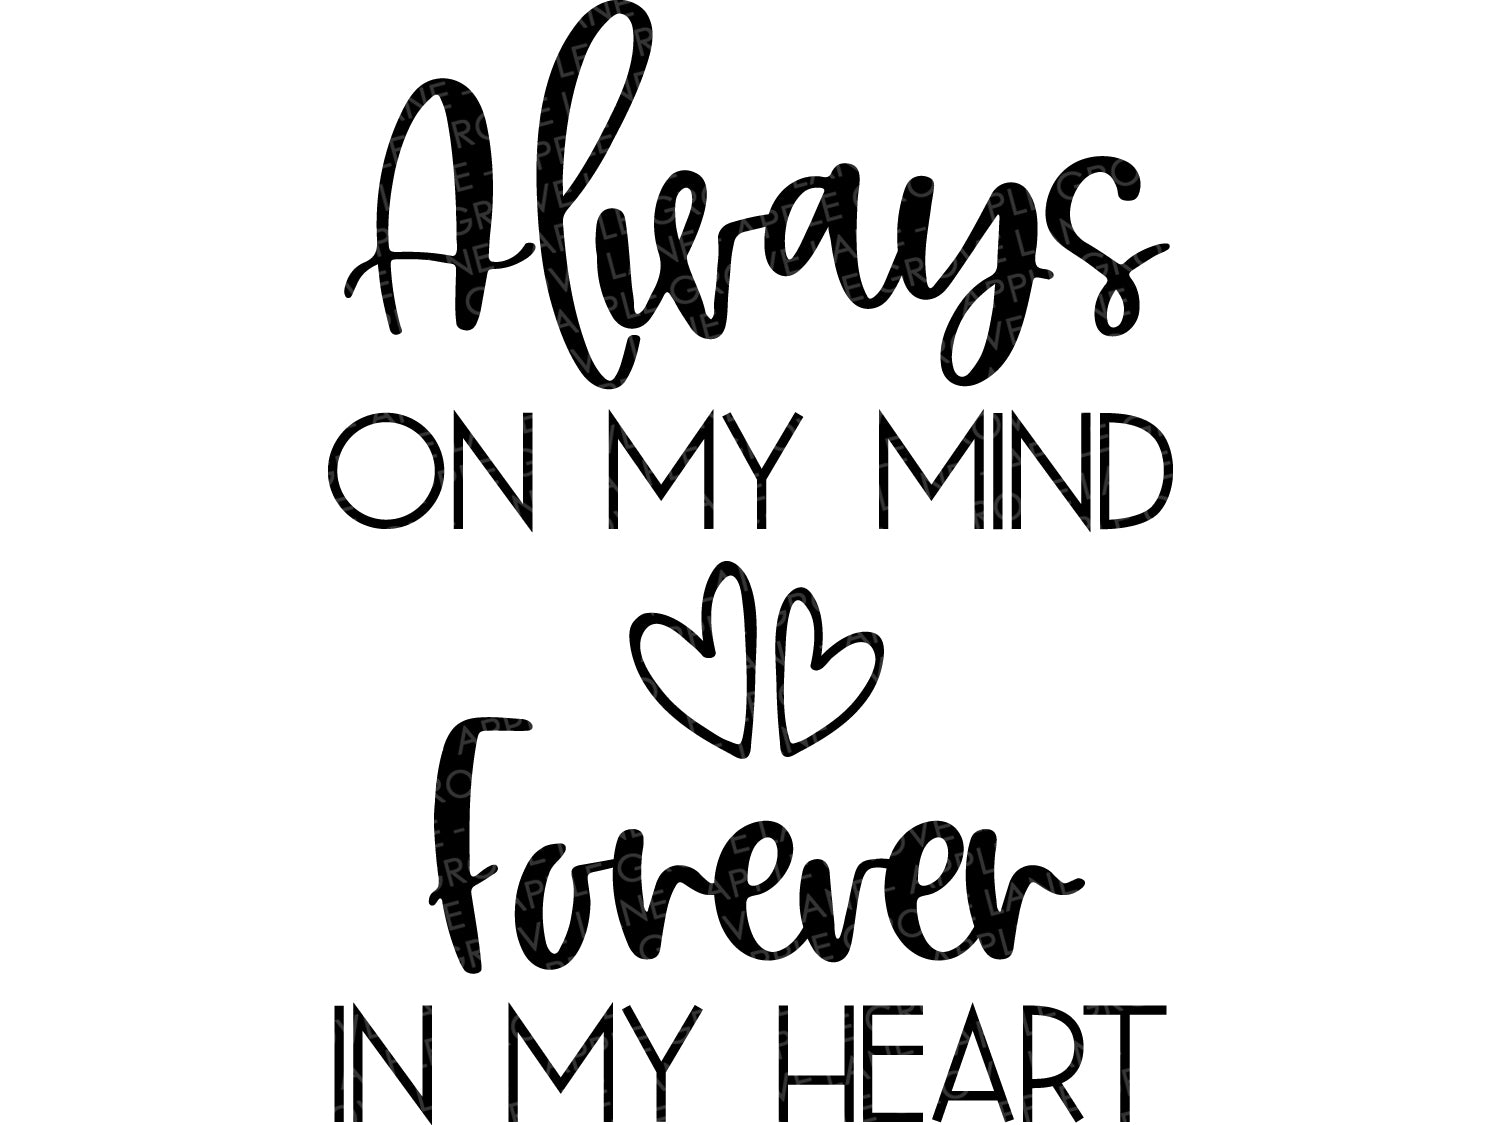 Always On My Mind Forever In My Heart Svg - Always On My Mind Svg - Forever In My Heart Svg - Memorial Svg - In Memory Svg - Memorial Sign